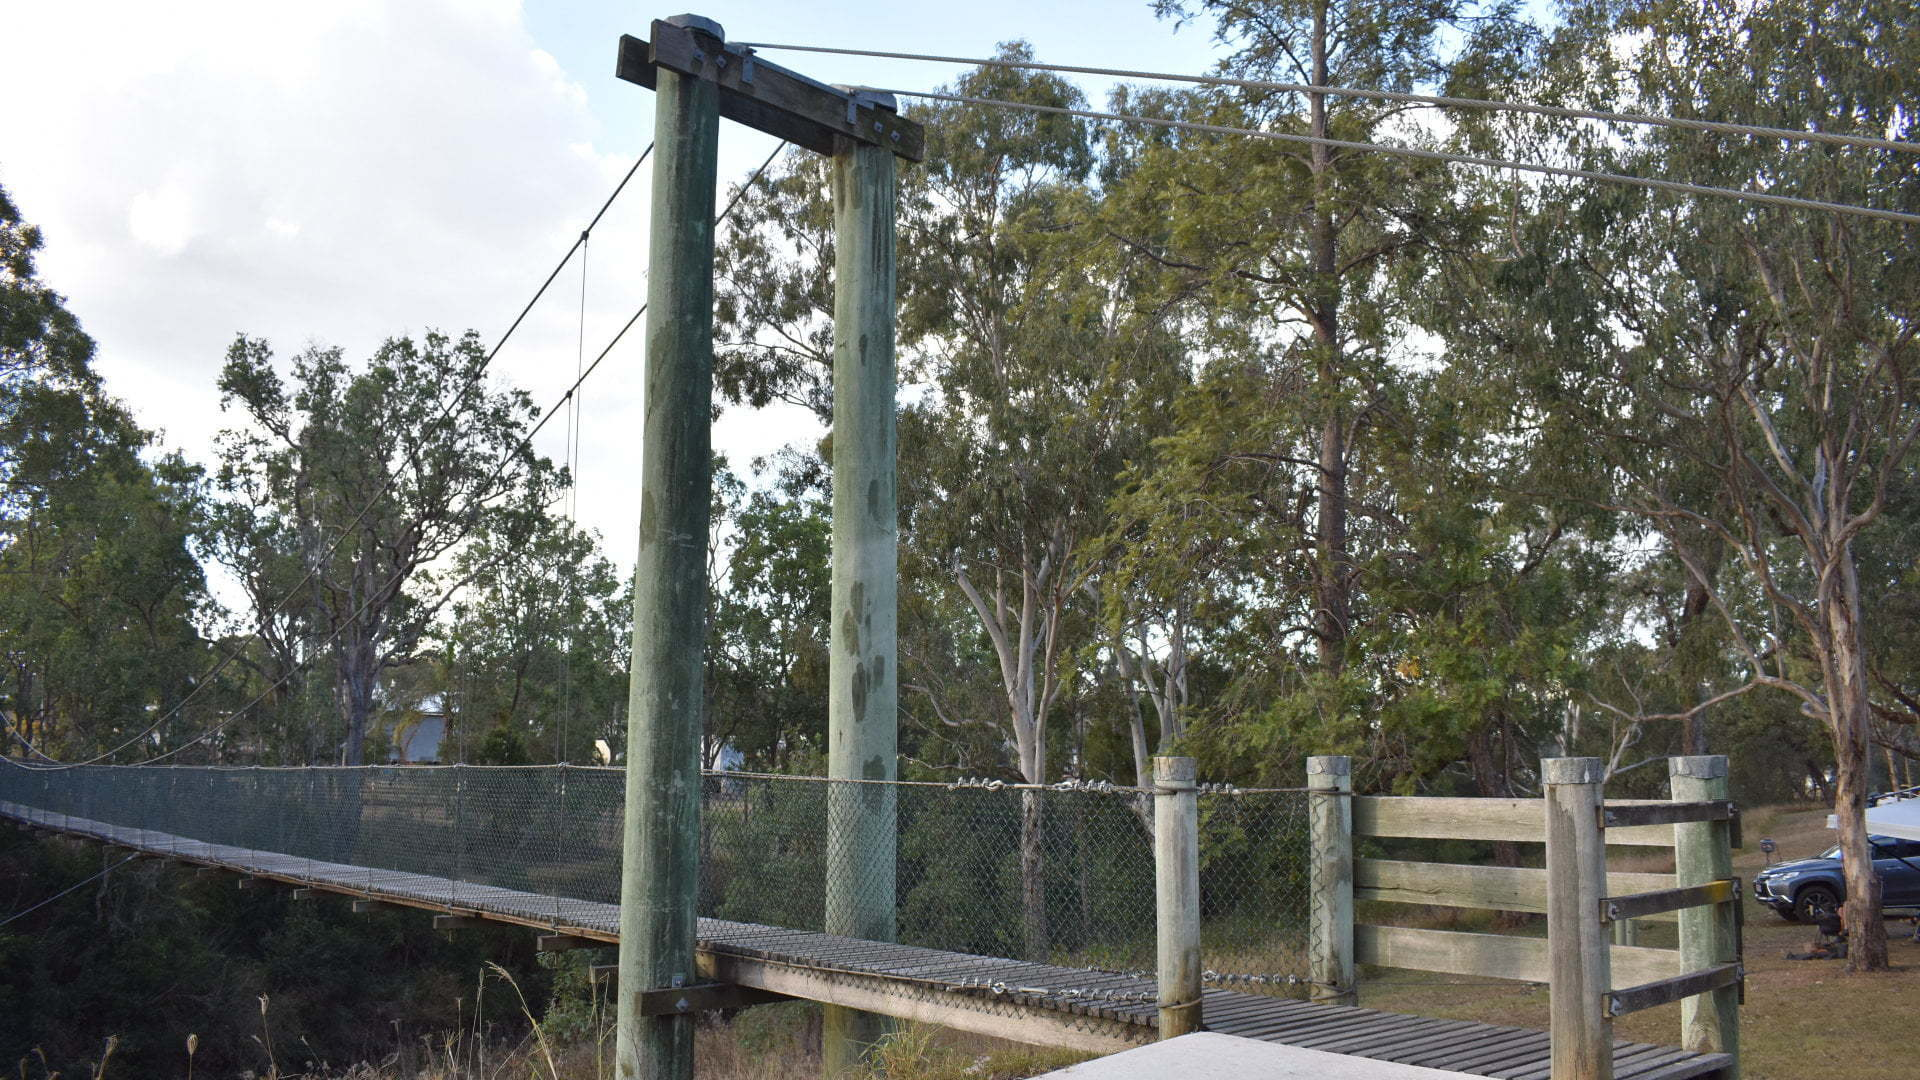 Suspension bridge at the Swinging Bridge Park at Cooyar over the Cooyar Creek. Free camp location with power available by paying at the pub